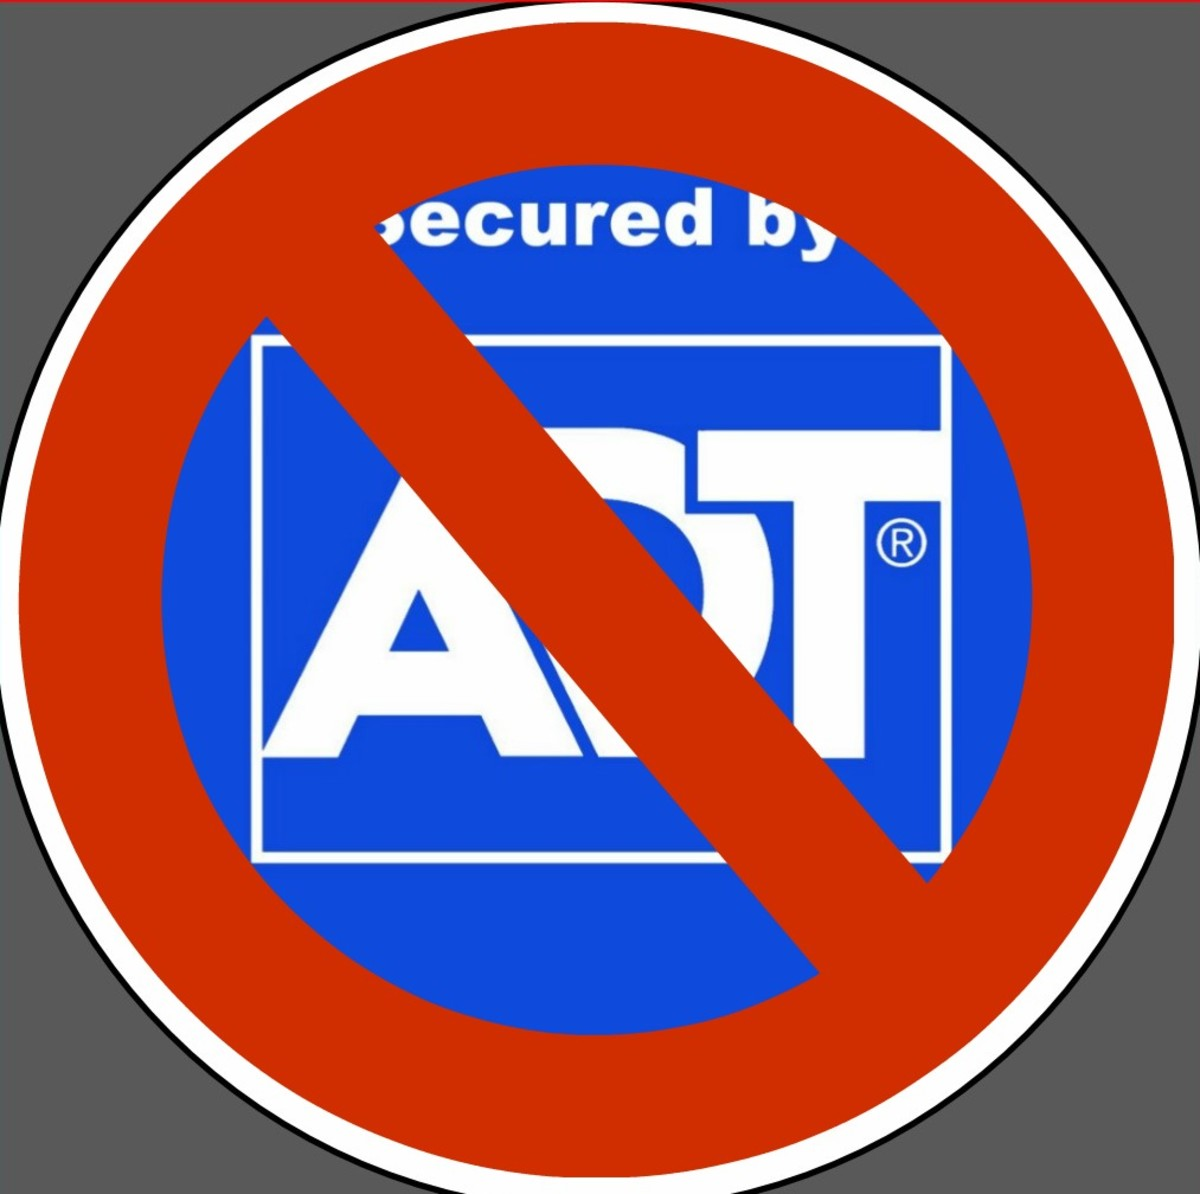 How ADT Victimized Me